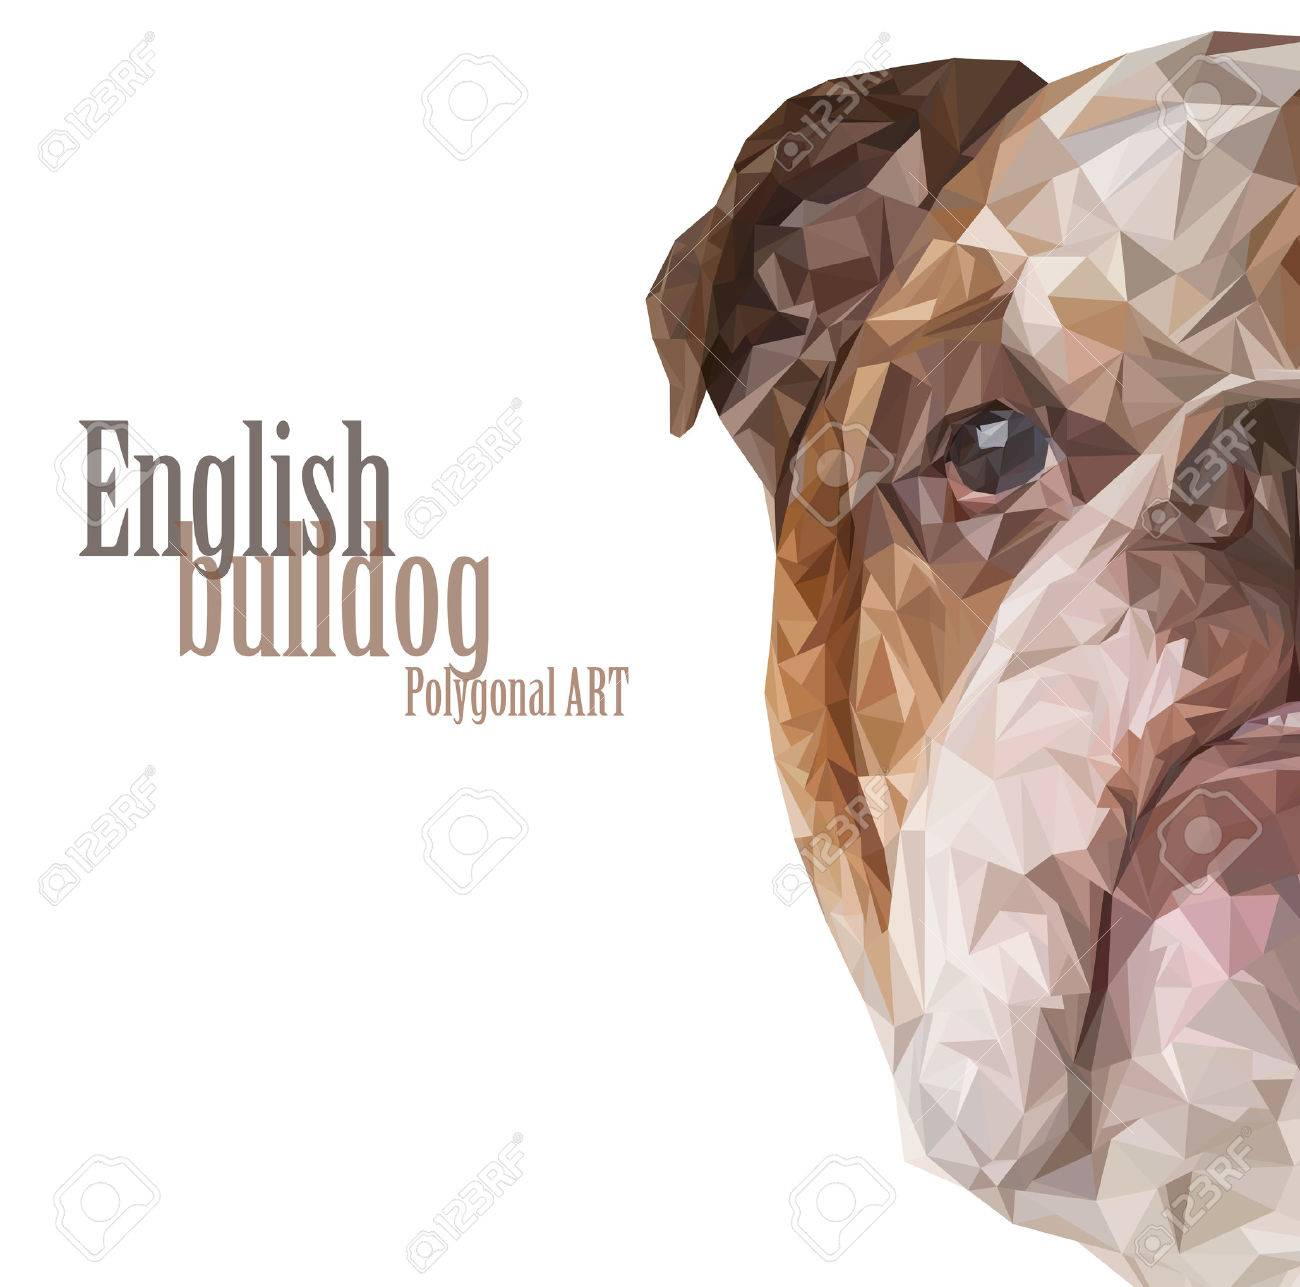 english bulldog polygonal drawing the bitmap drawing on a white background stock photo